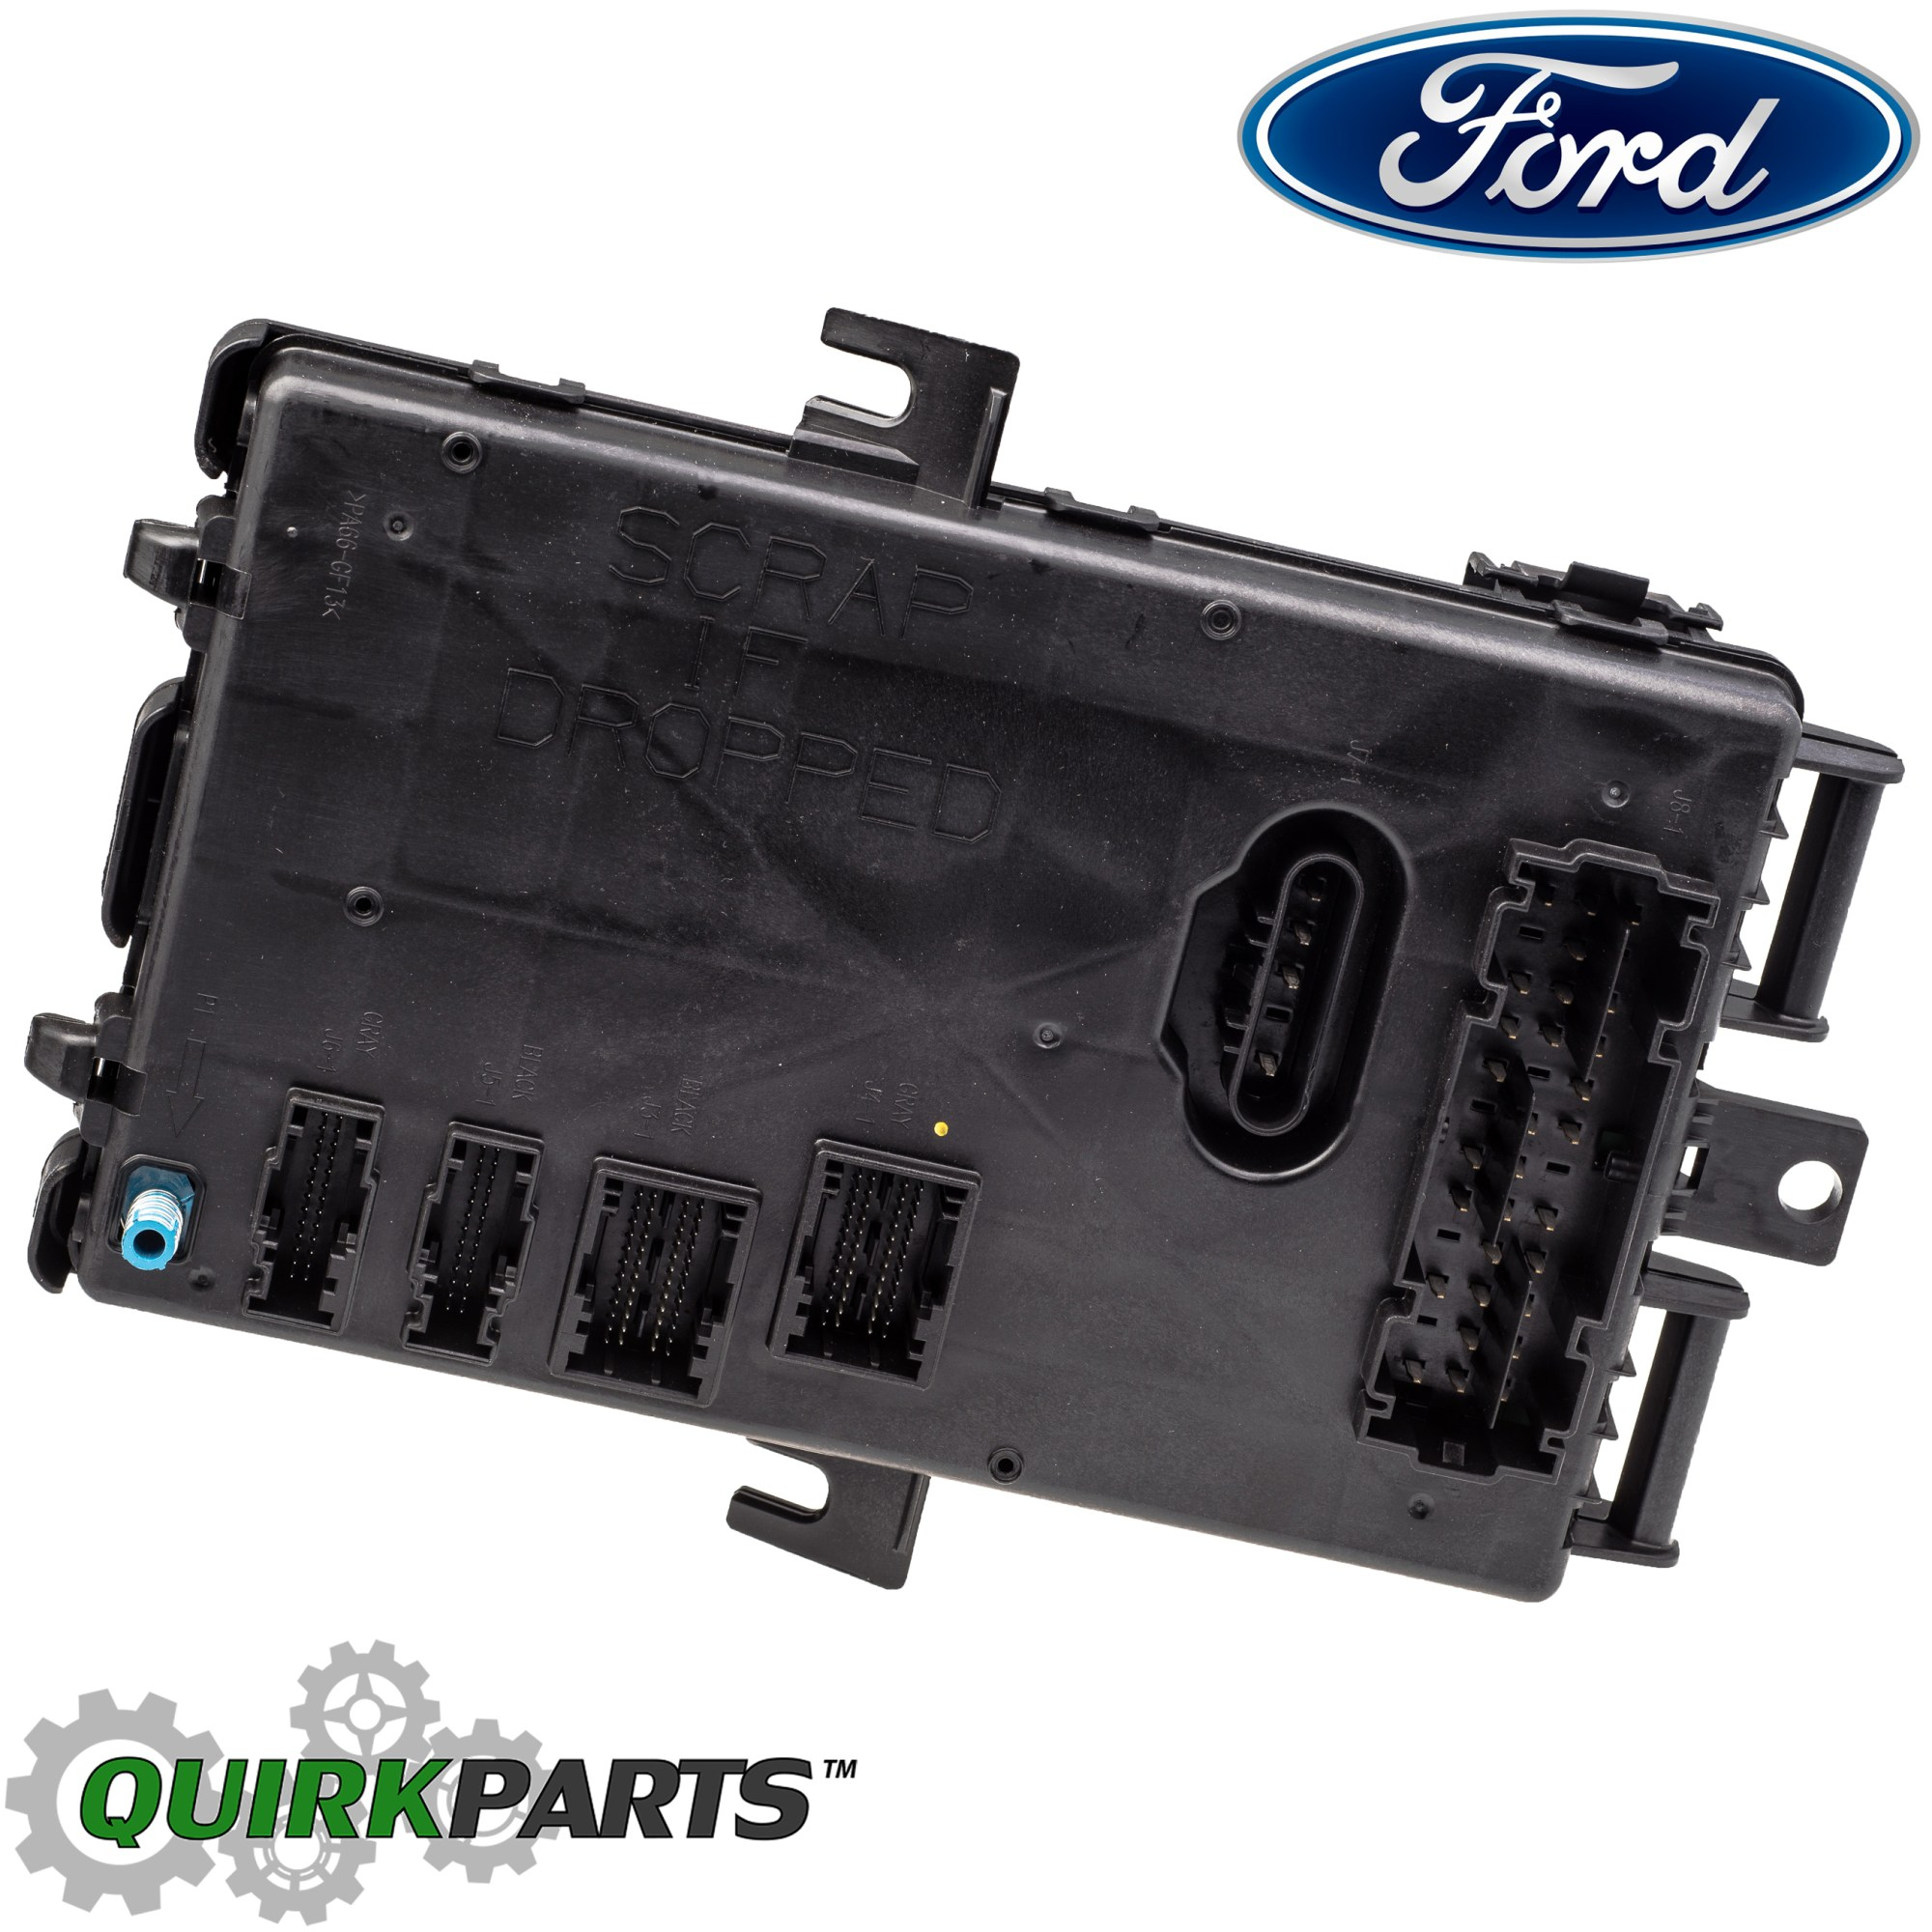 hight resolution of 2005 2006 ford mustang smart junction box keyless entry alarm control module oem ford 5r3z 15604 dc quirk parts